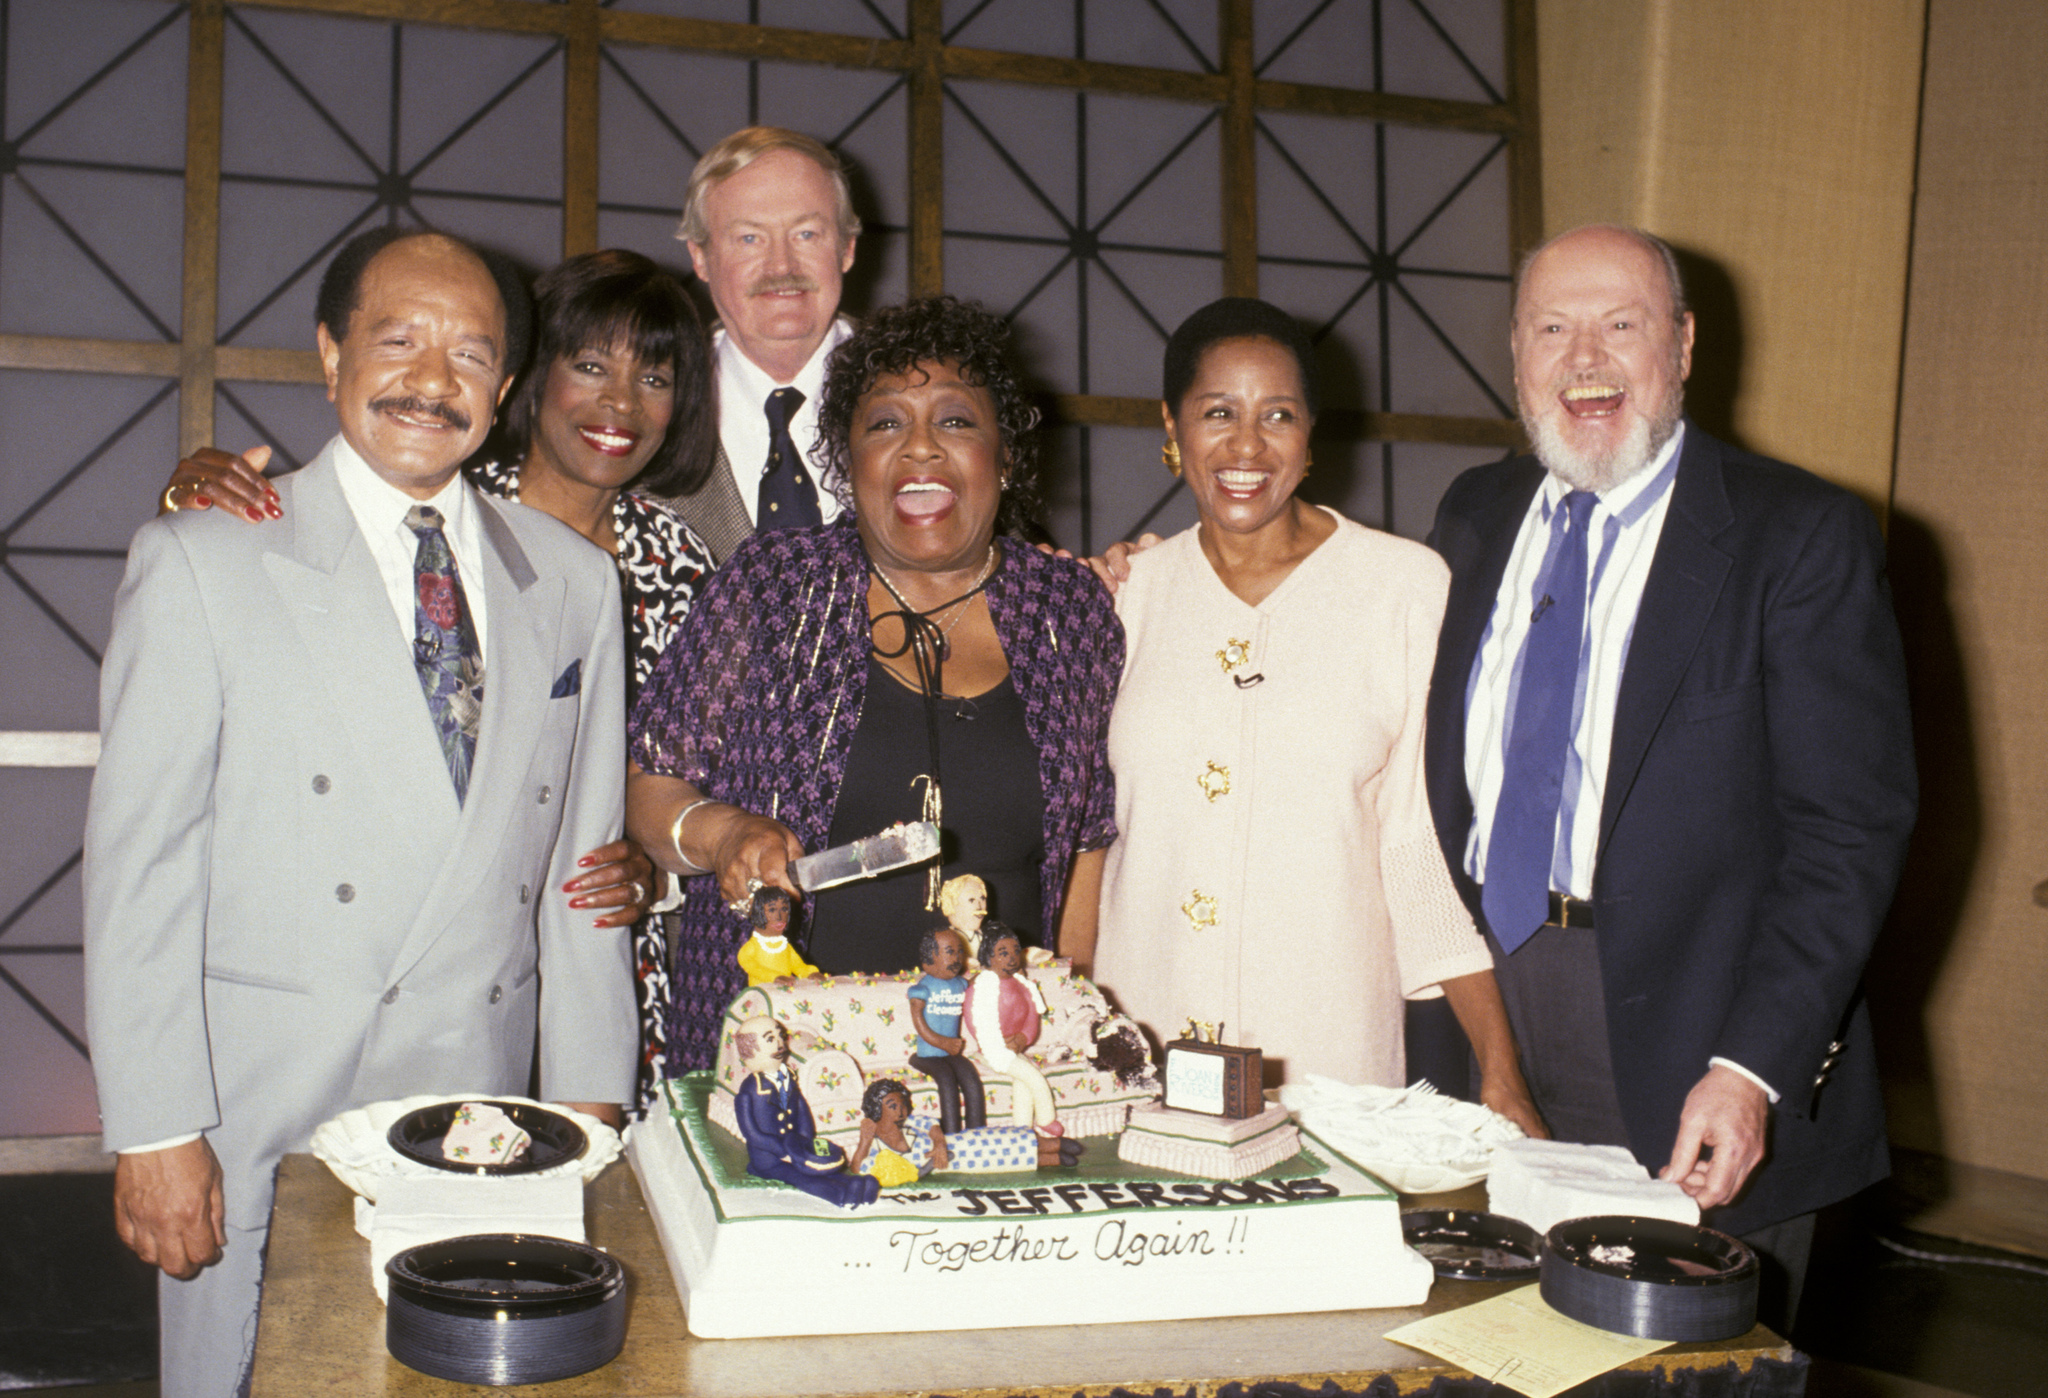 Marla Gibbs, Franklin Cover, Sherman Hemsley, Roxie Roker, Isabel Sanford and Ned Wertimer at event of The Jeffersons (1975)